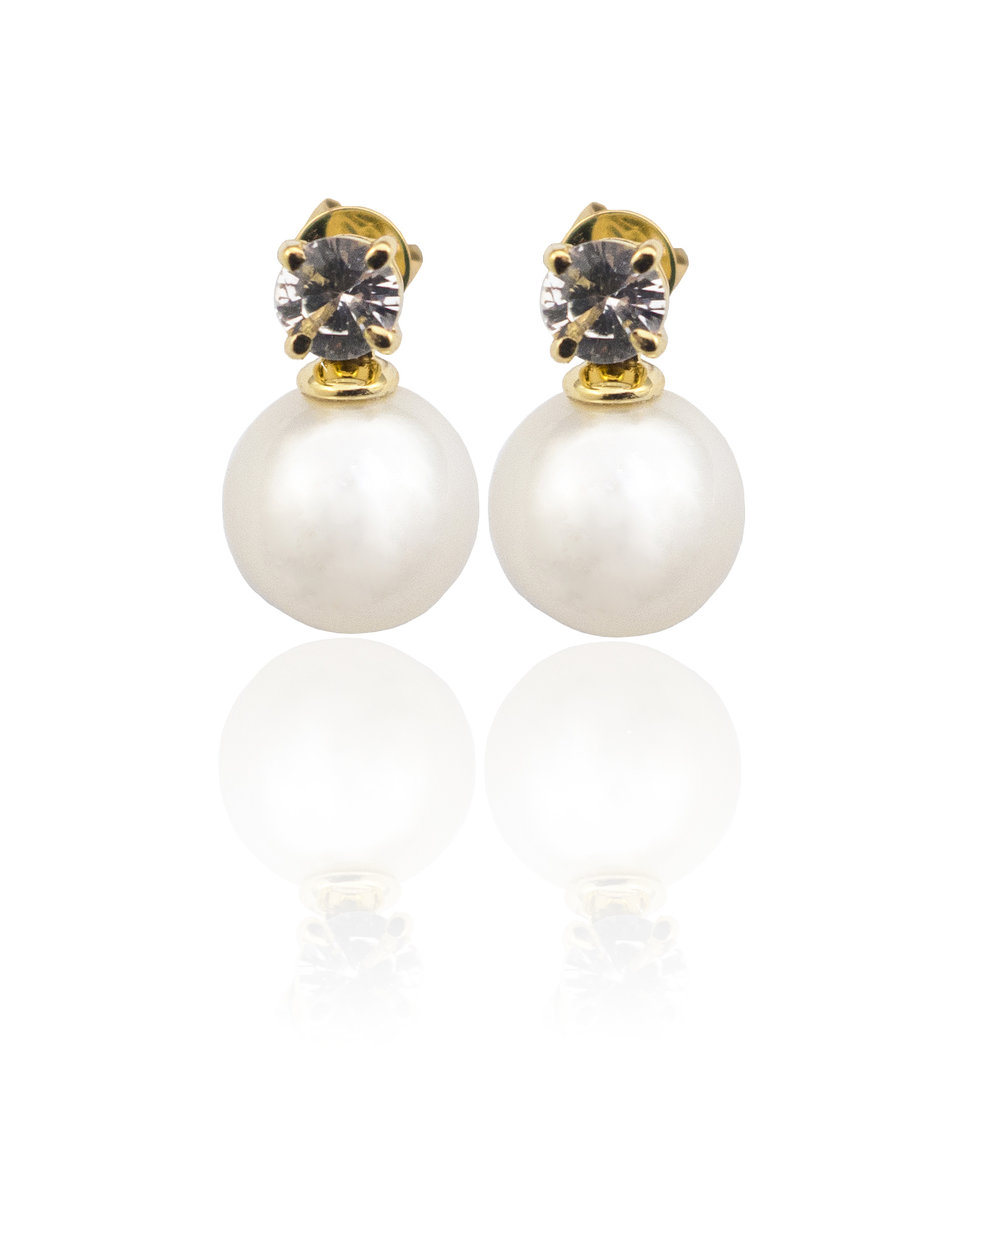 South Sea pearl & Sapphire earrings!